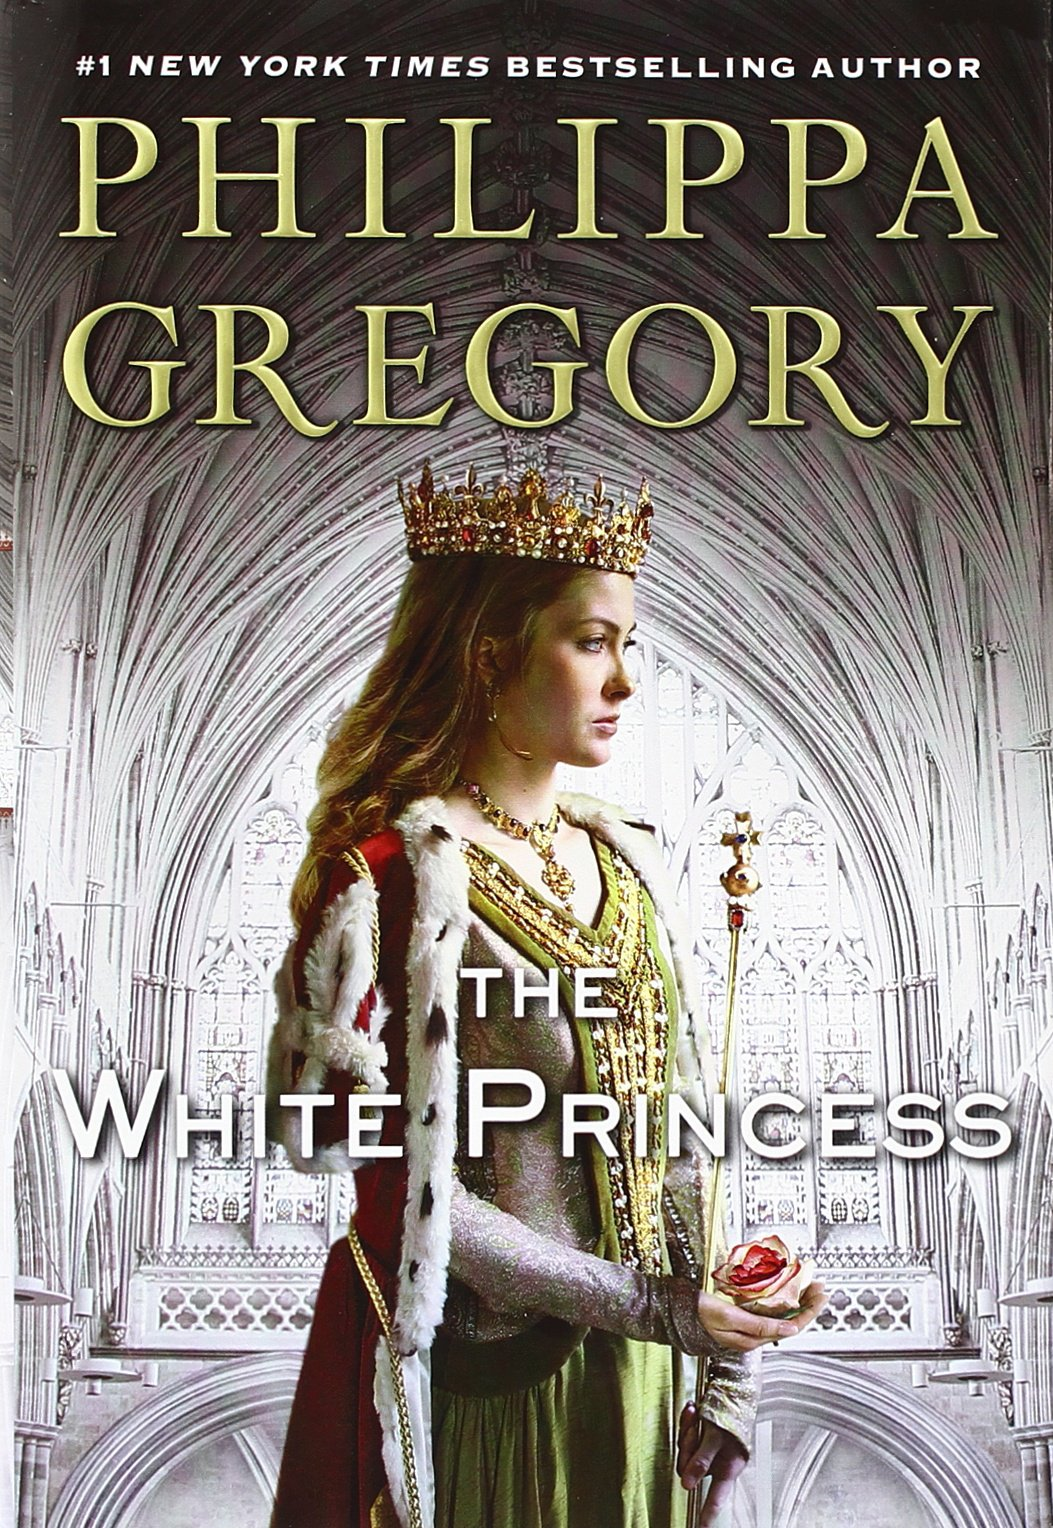 The White Princess US Cover